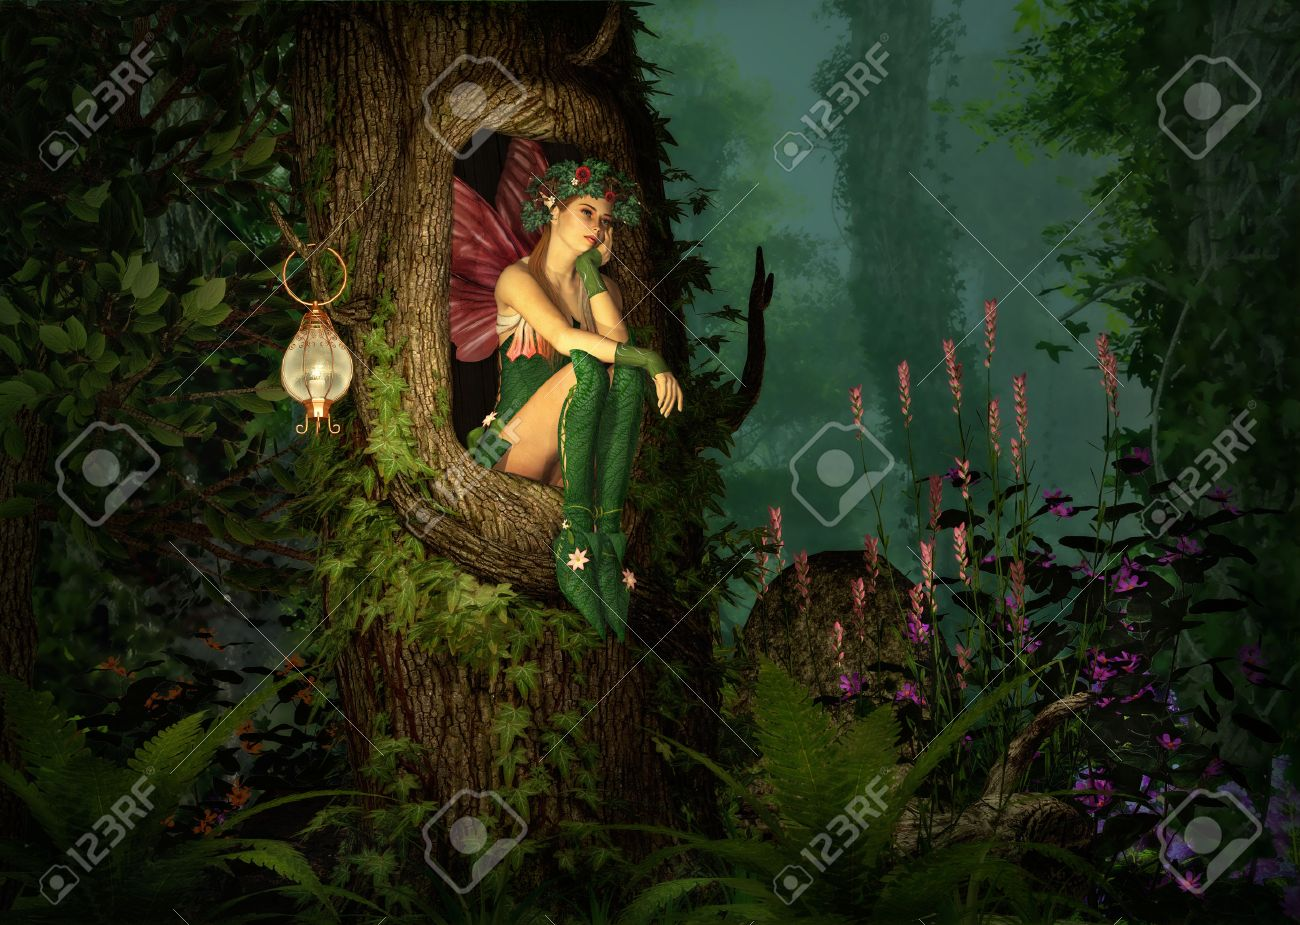 3d computer graphics of a fairy with a wreath on her head sitting